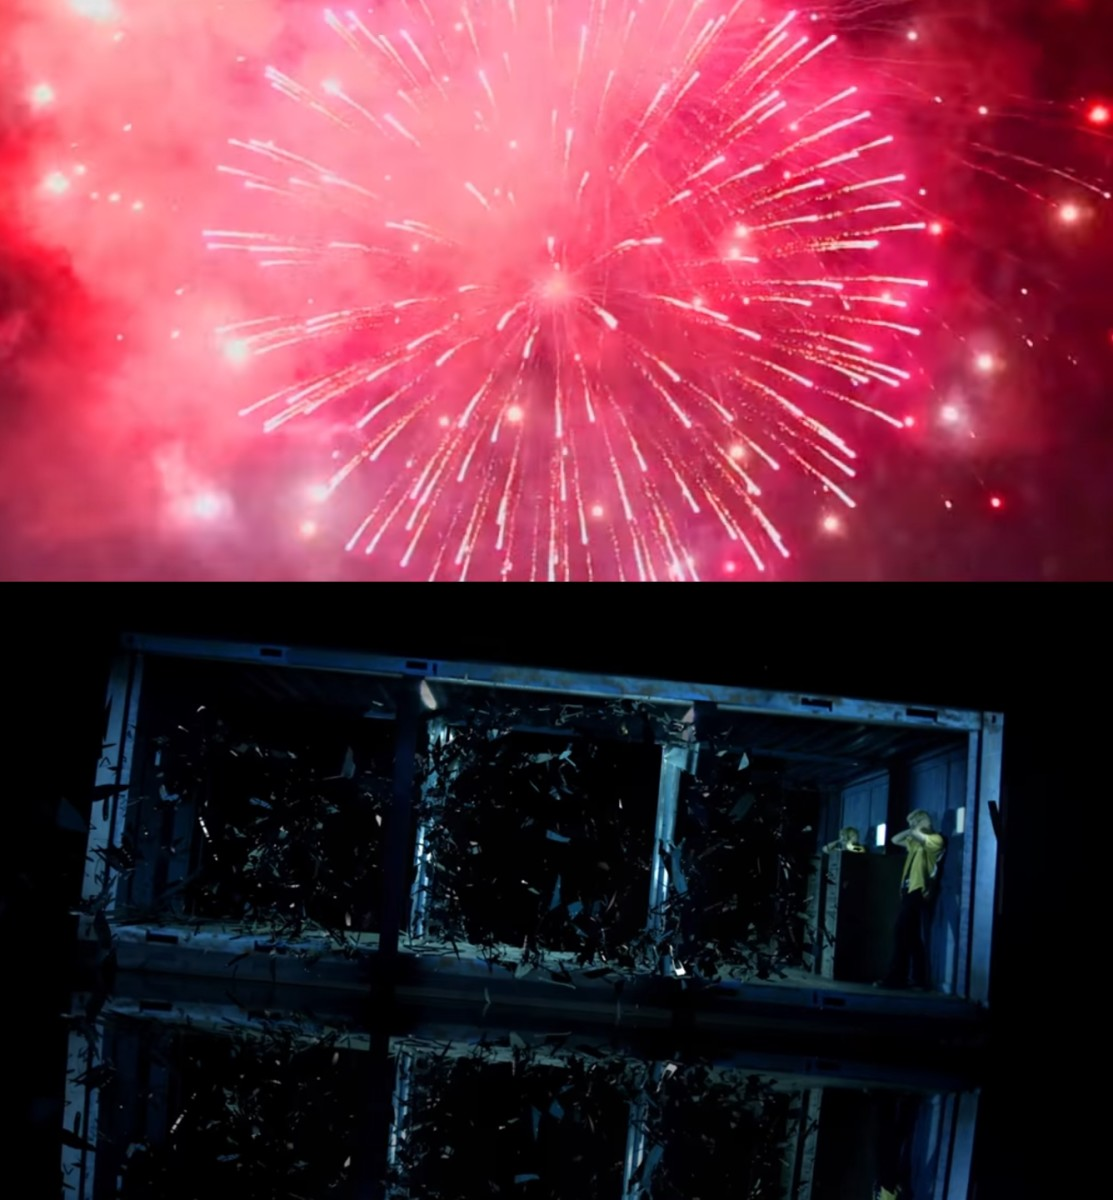 The firework and shattered mirrors.